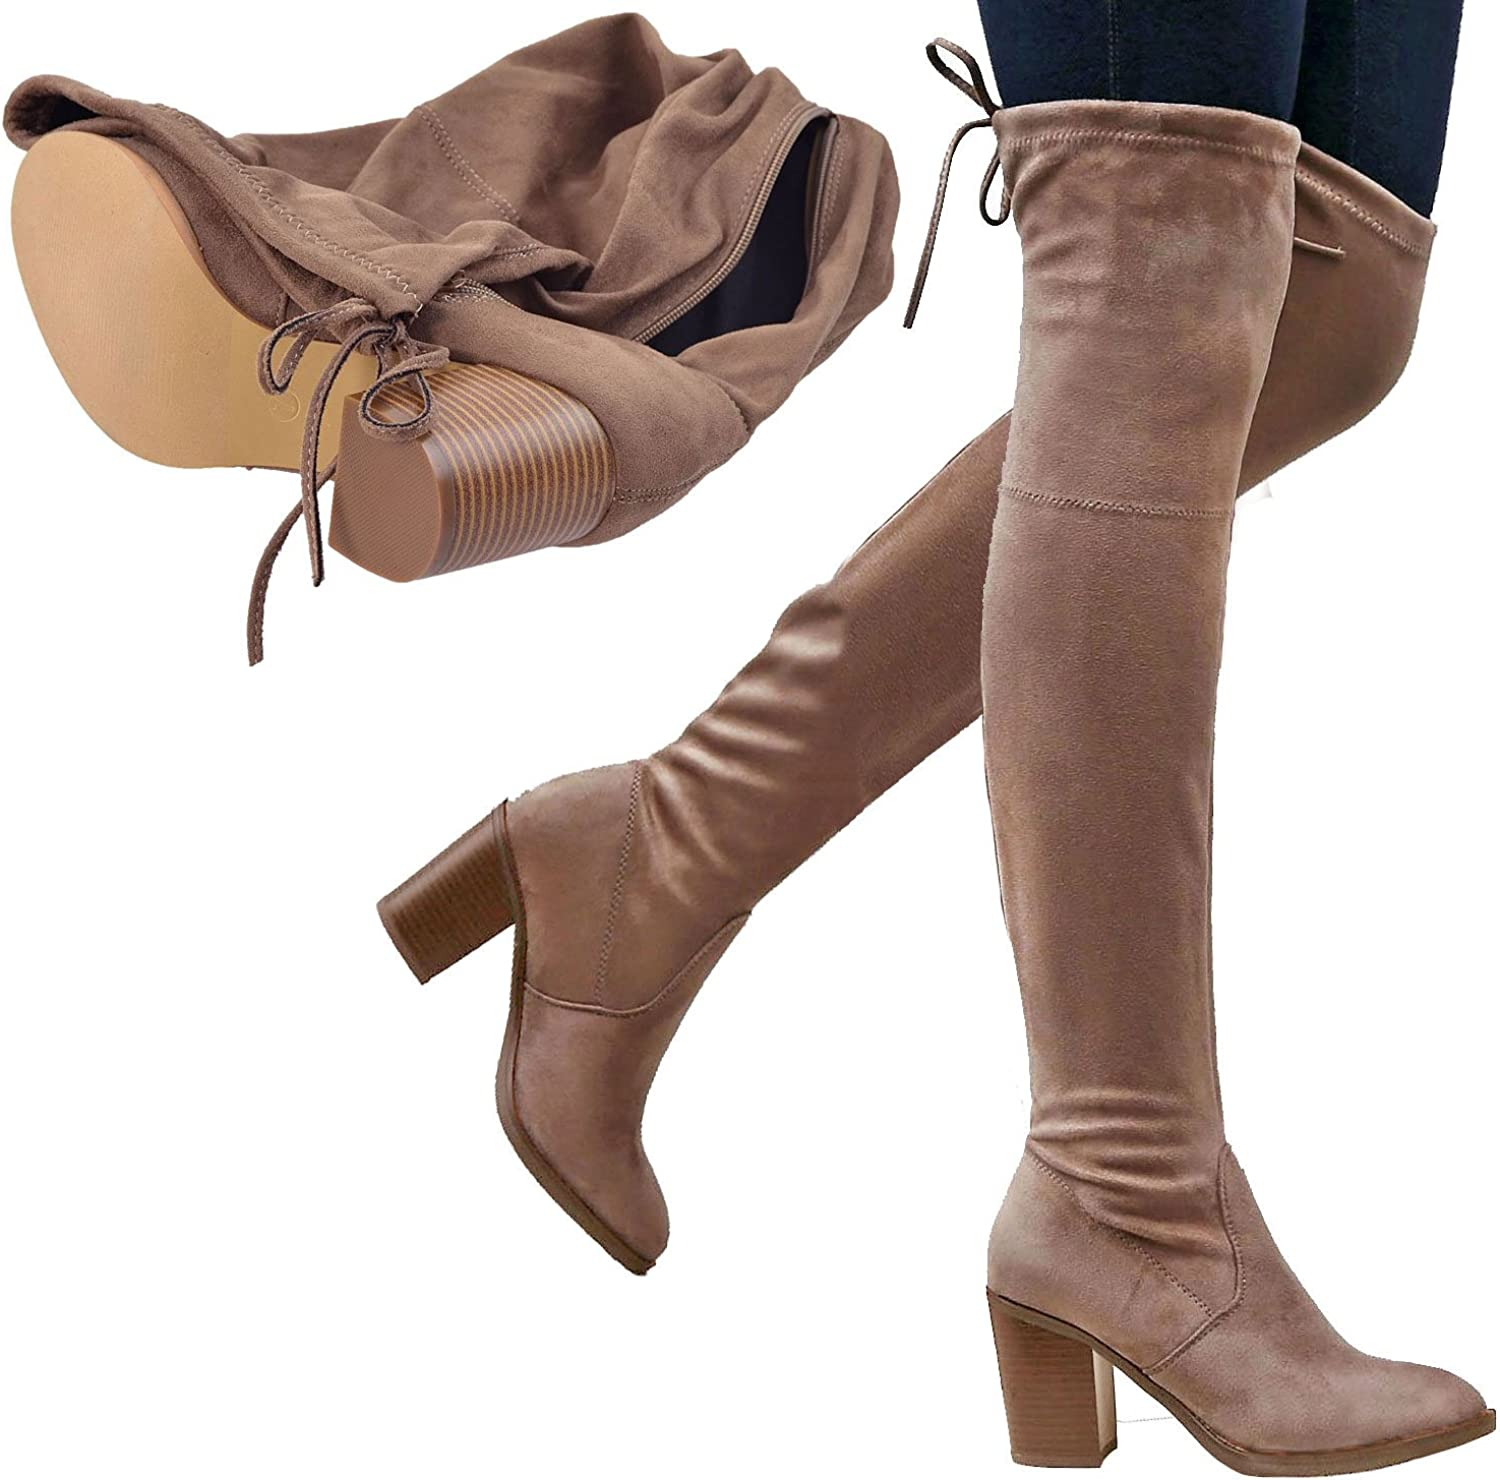 Generation Y Womens Knee High Boots Zipper Closure Block Heel Over The Knee Boots